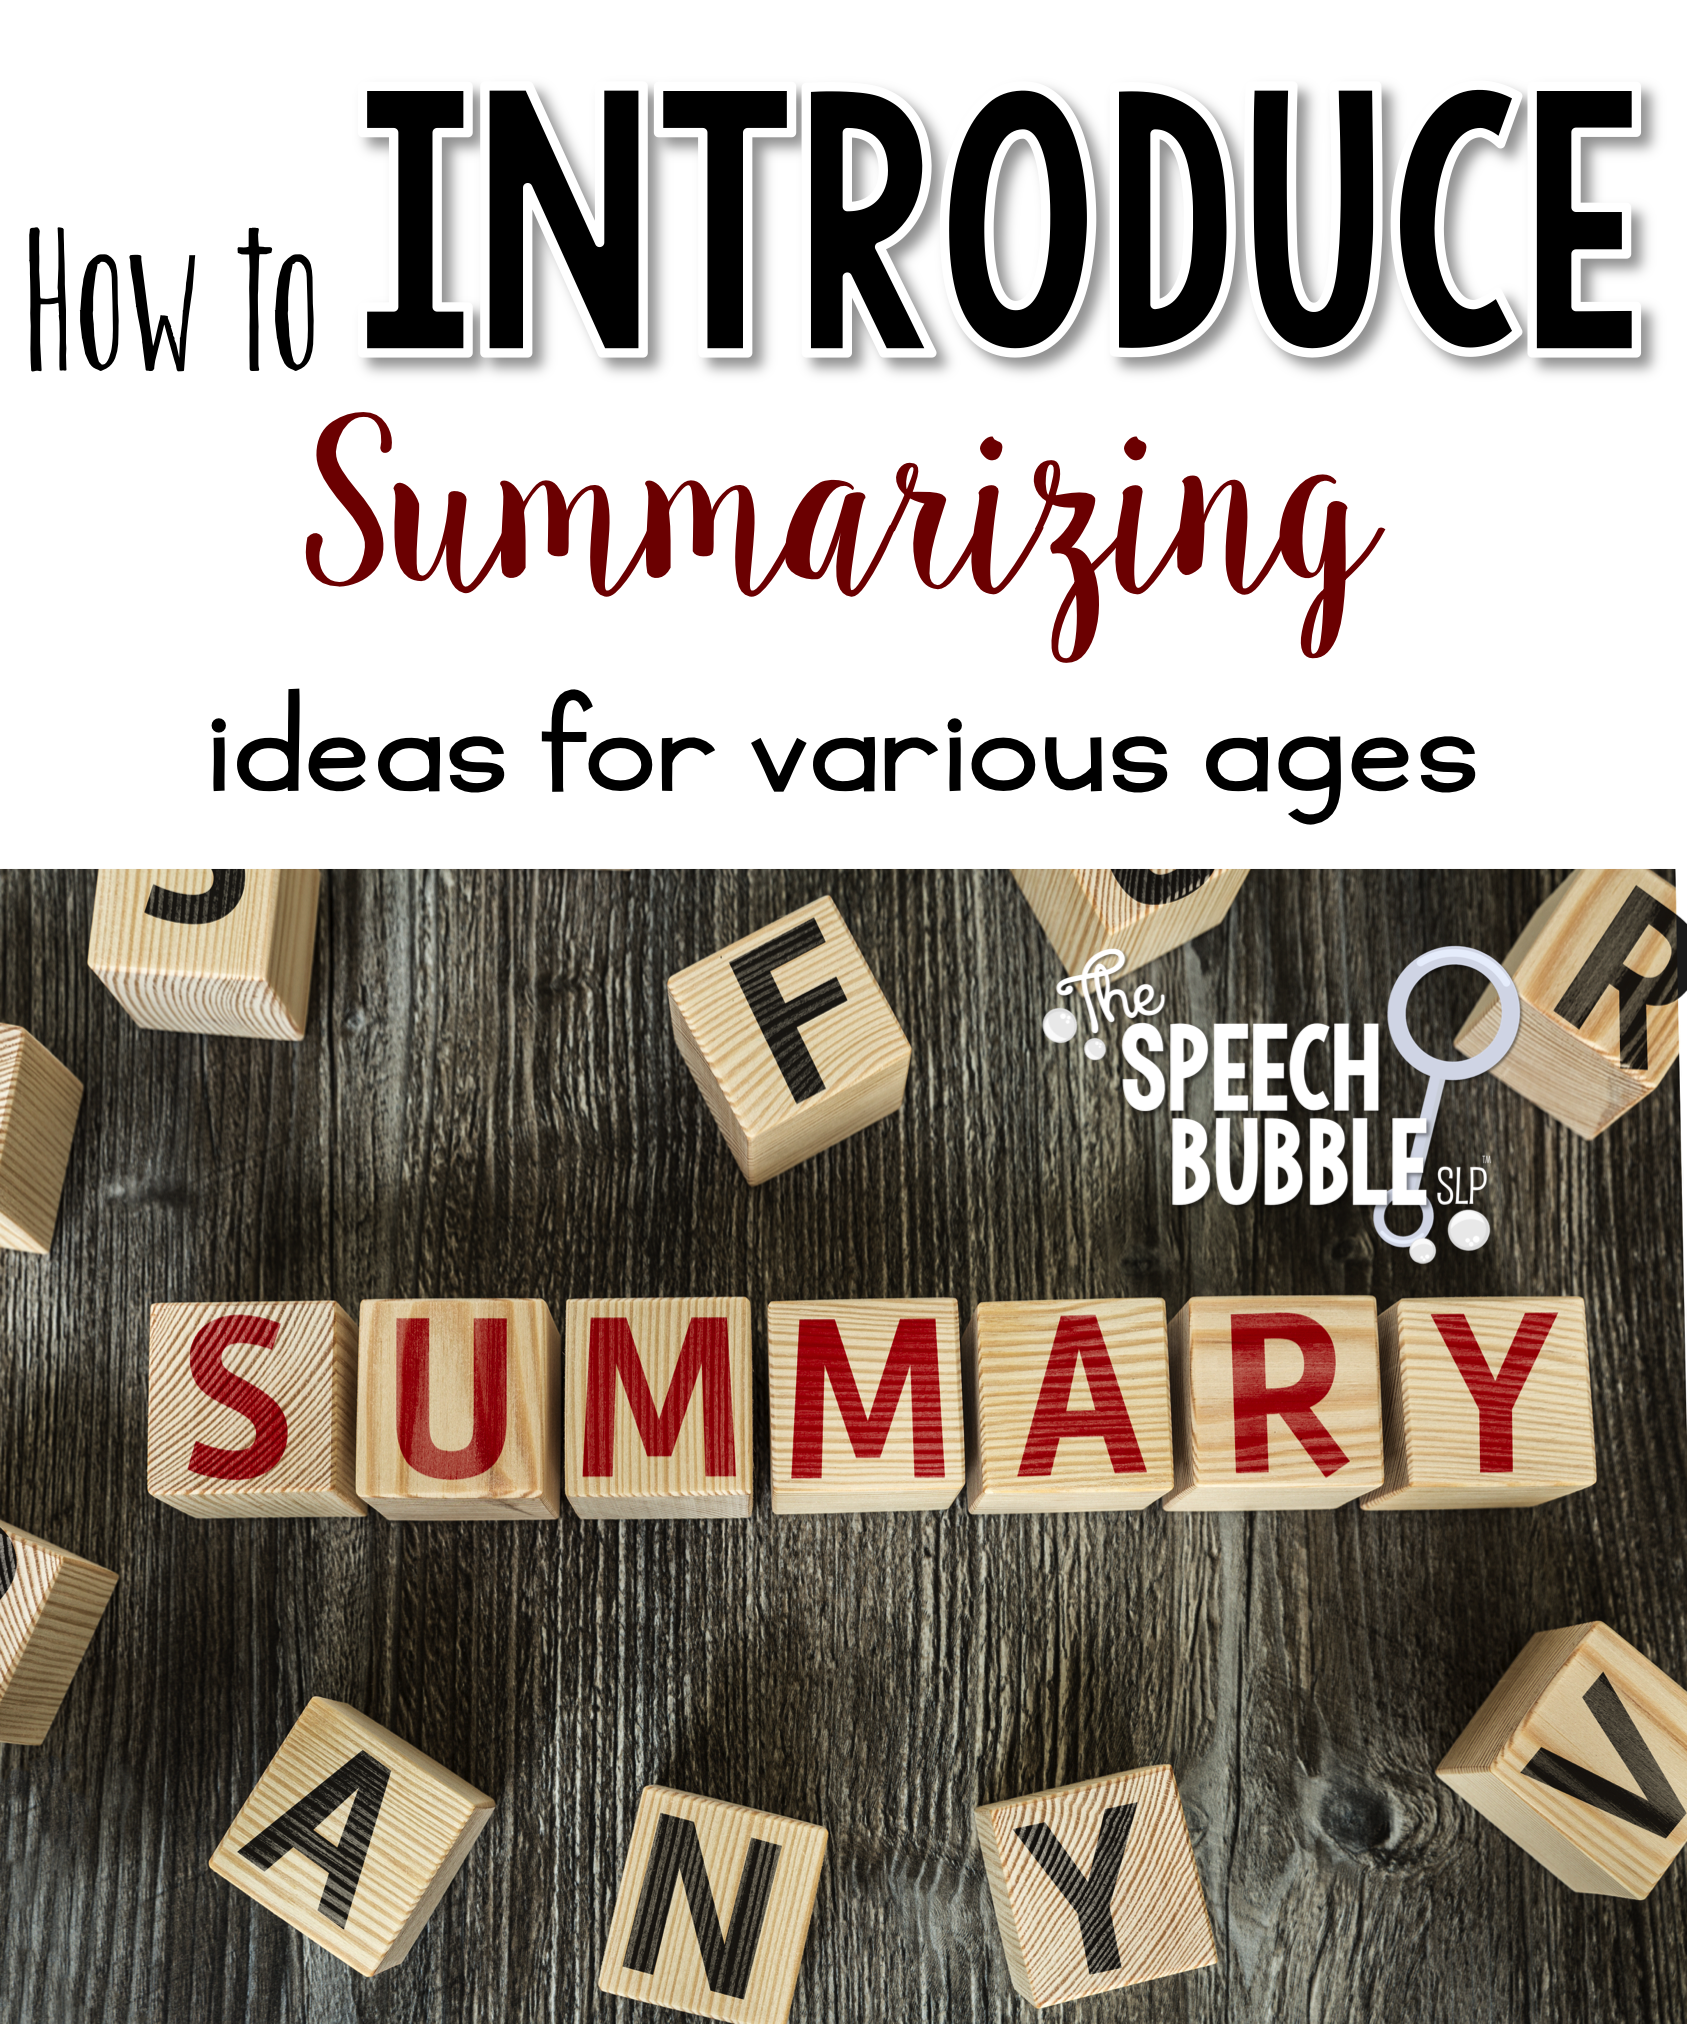 How to Introduce Summarizing